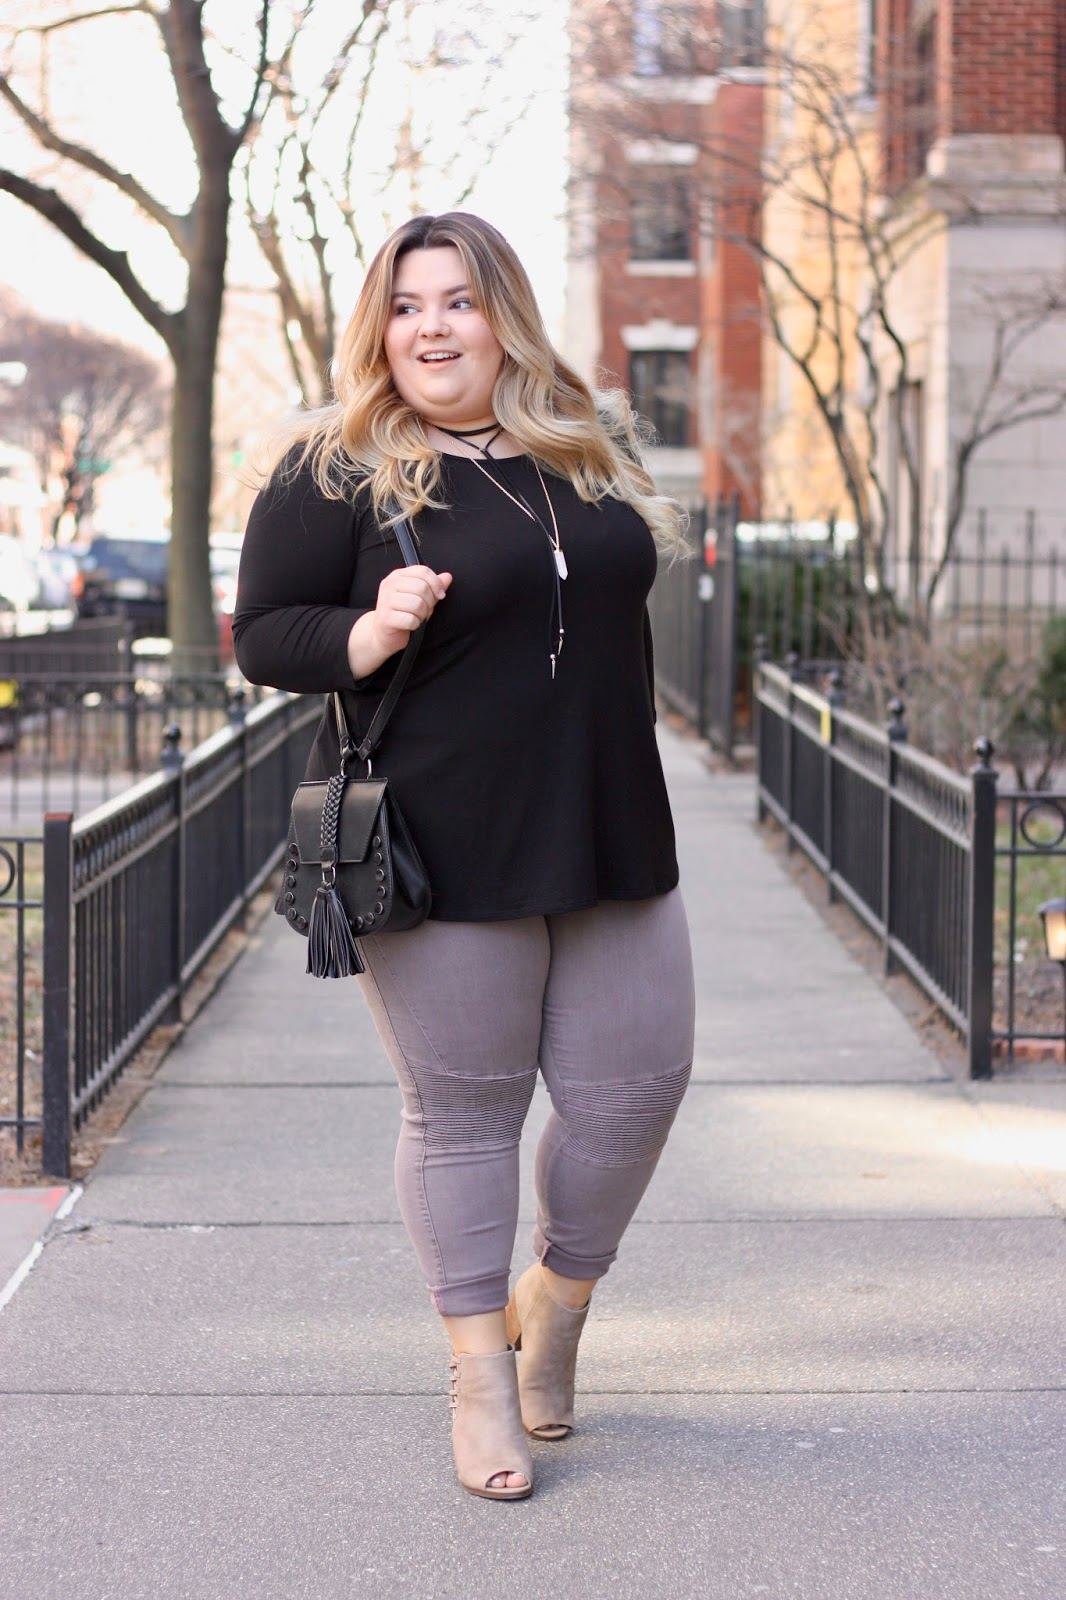 full figured fashion, off your beauty standards, refinery 29, stitch fix, stitch fix blogger review, plus size skinny jeans motto, plus size open back blouses, natalie craig, Natalie in the city, plus size fashion blogger, chicago blogger, curvy girl chic, plus model magazine, petite plus size fashion, body positivity